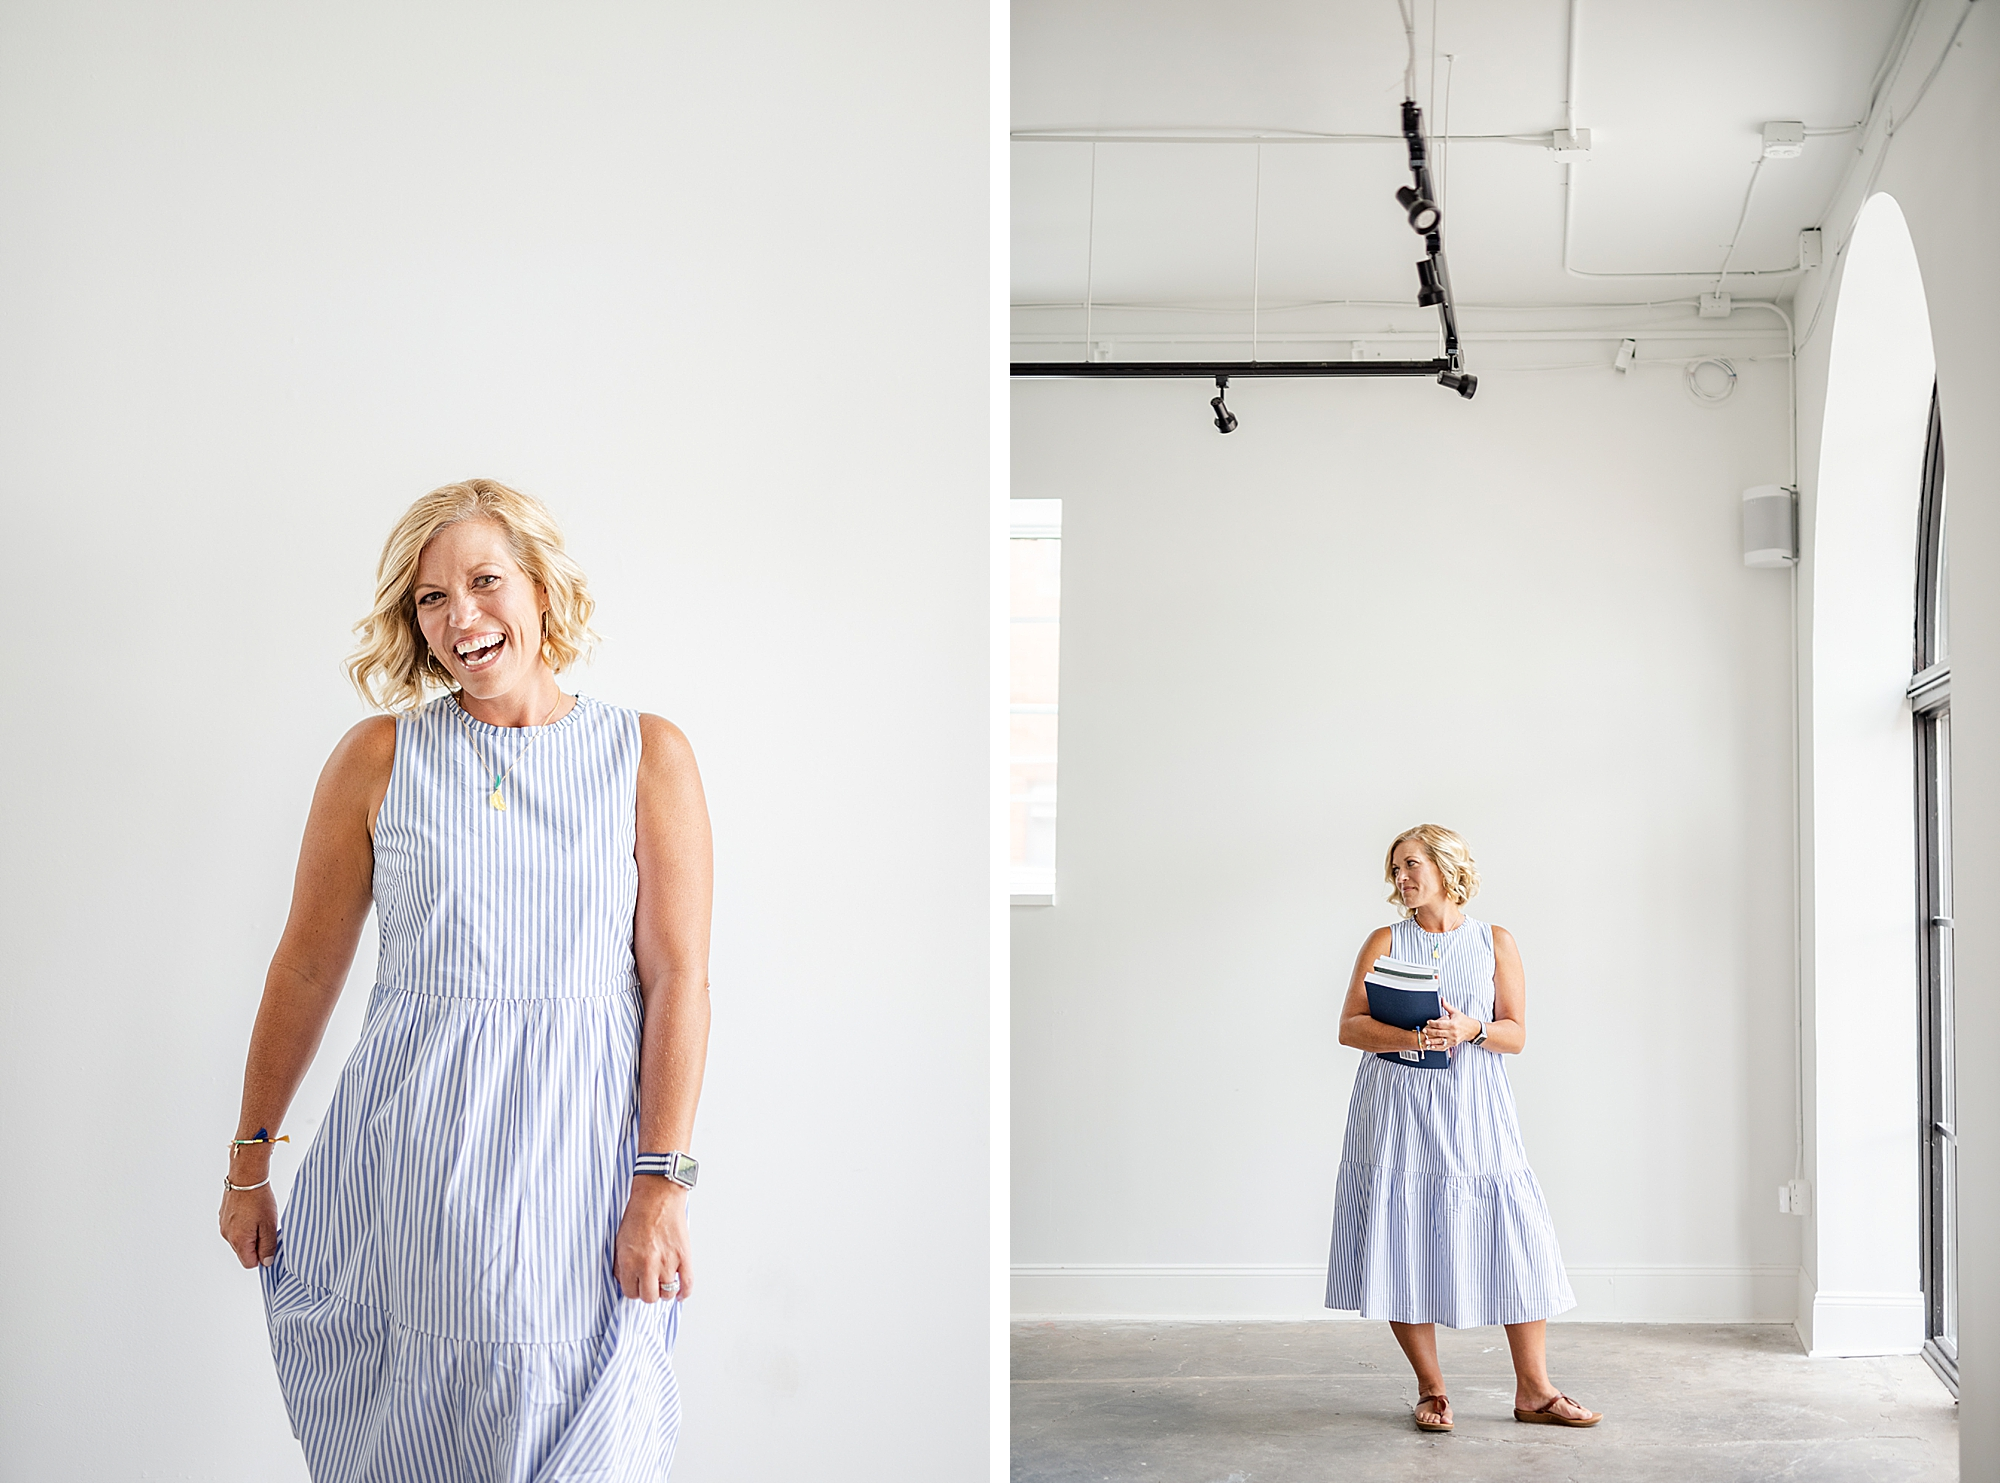 joyful branding portraits in the Fig Room with Stephanie Kase Photography